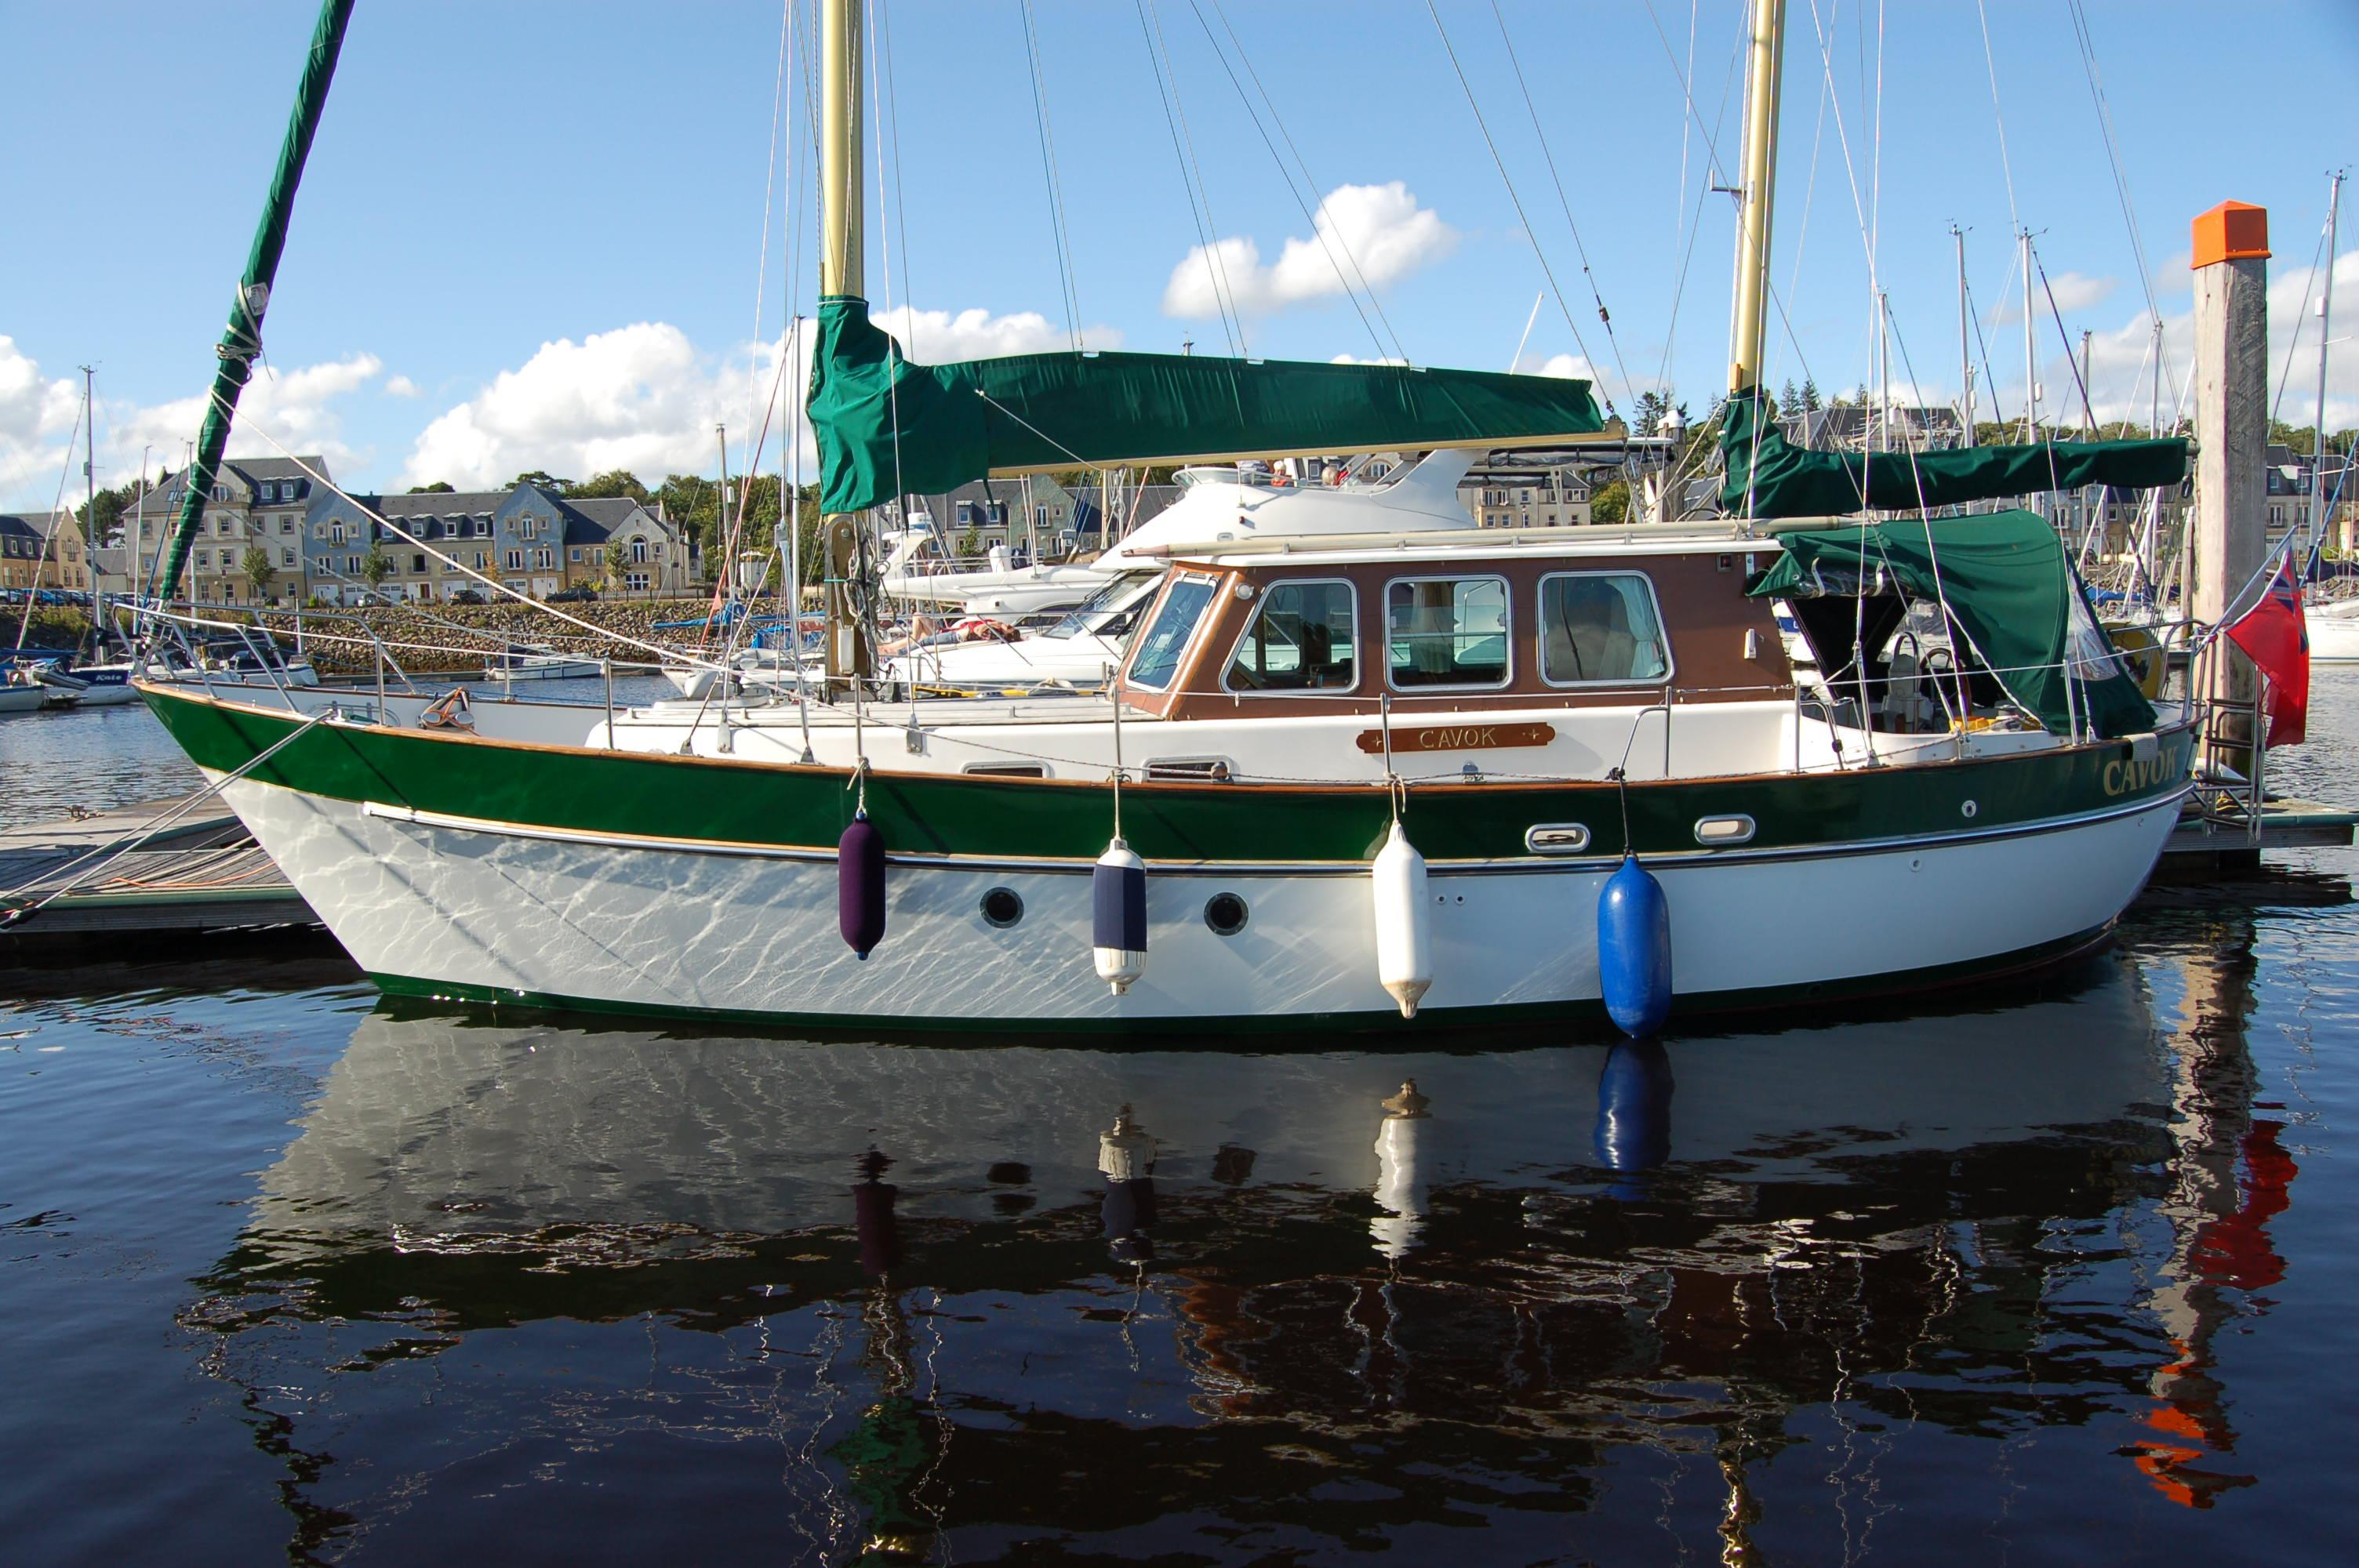 Renfrewshire United Kingdom  city photos : Dart 38 Motor Sailer Ketch, Kip Marina, Renfrewshire, United Kingdom